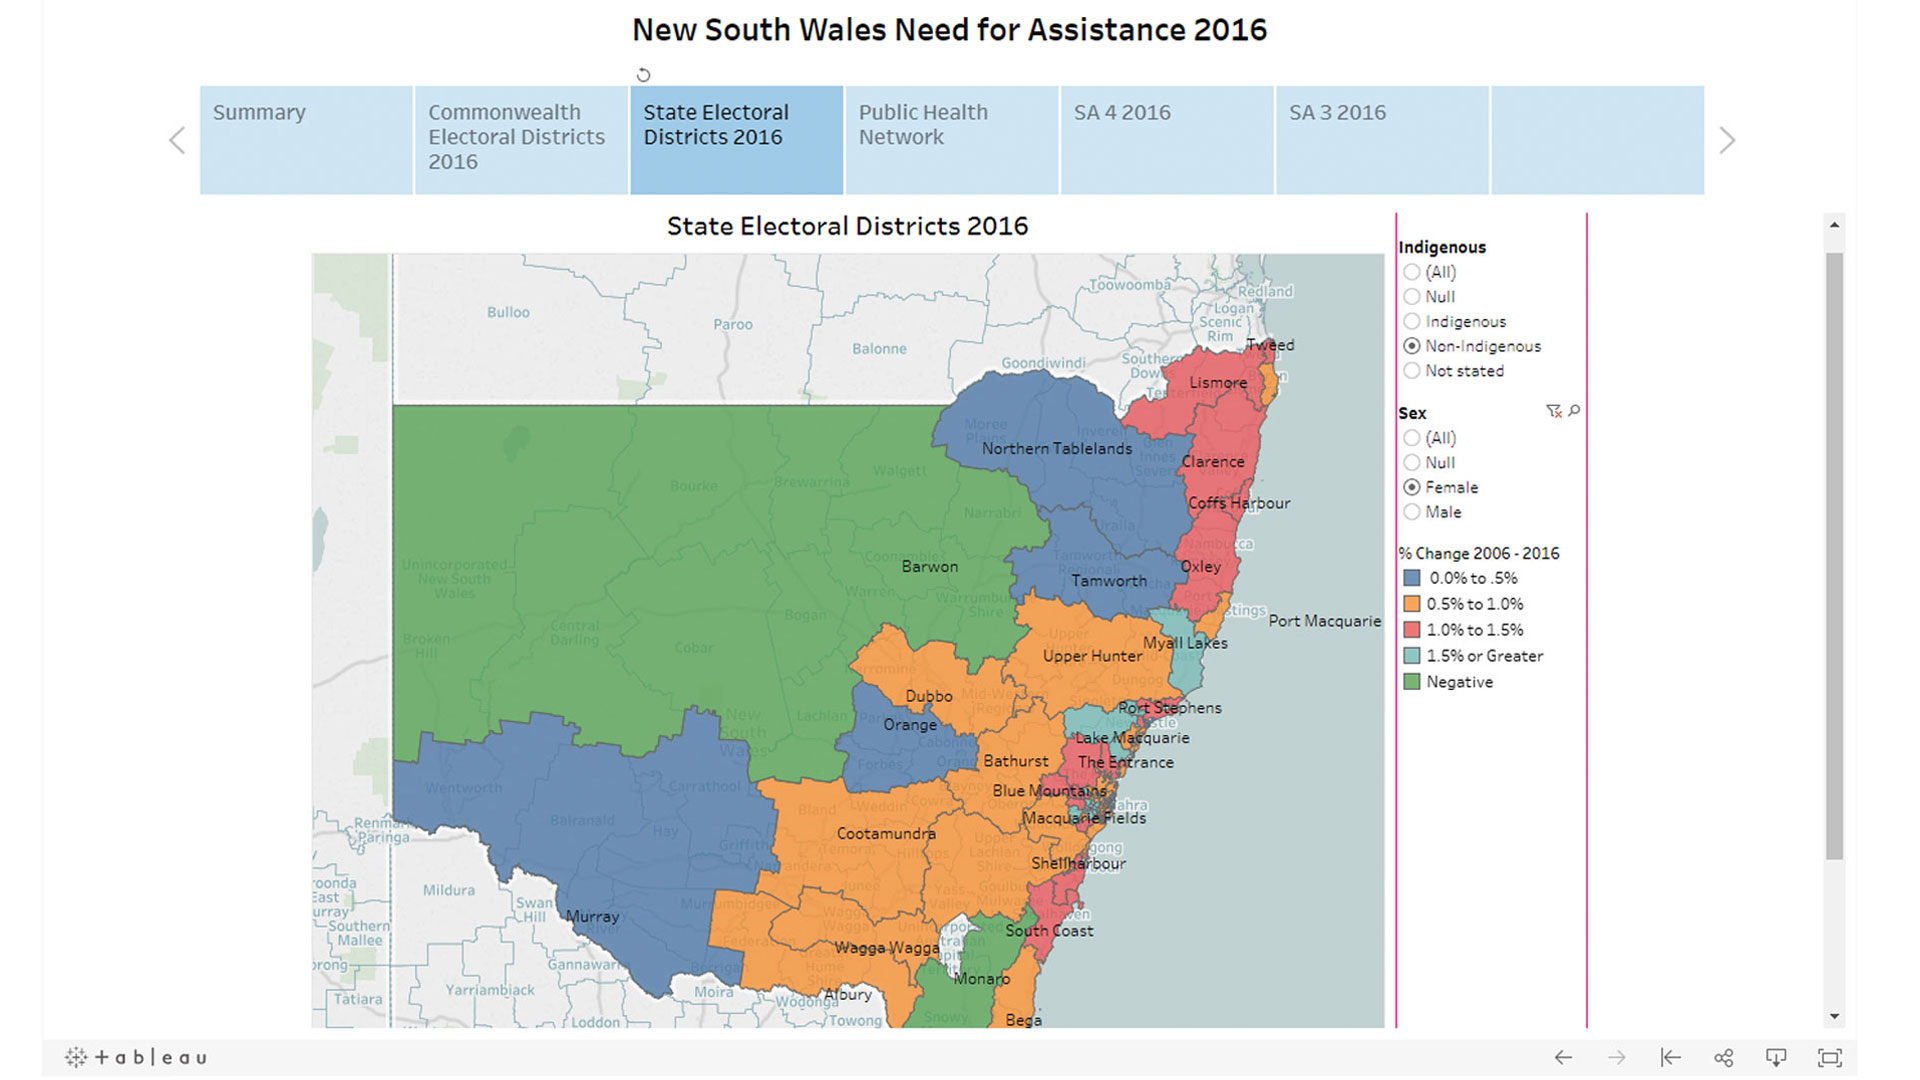 New South Wales Need for Assistance 2016 - NEDA Data Example